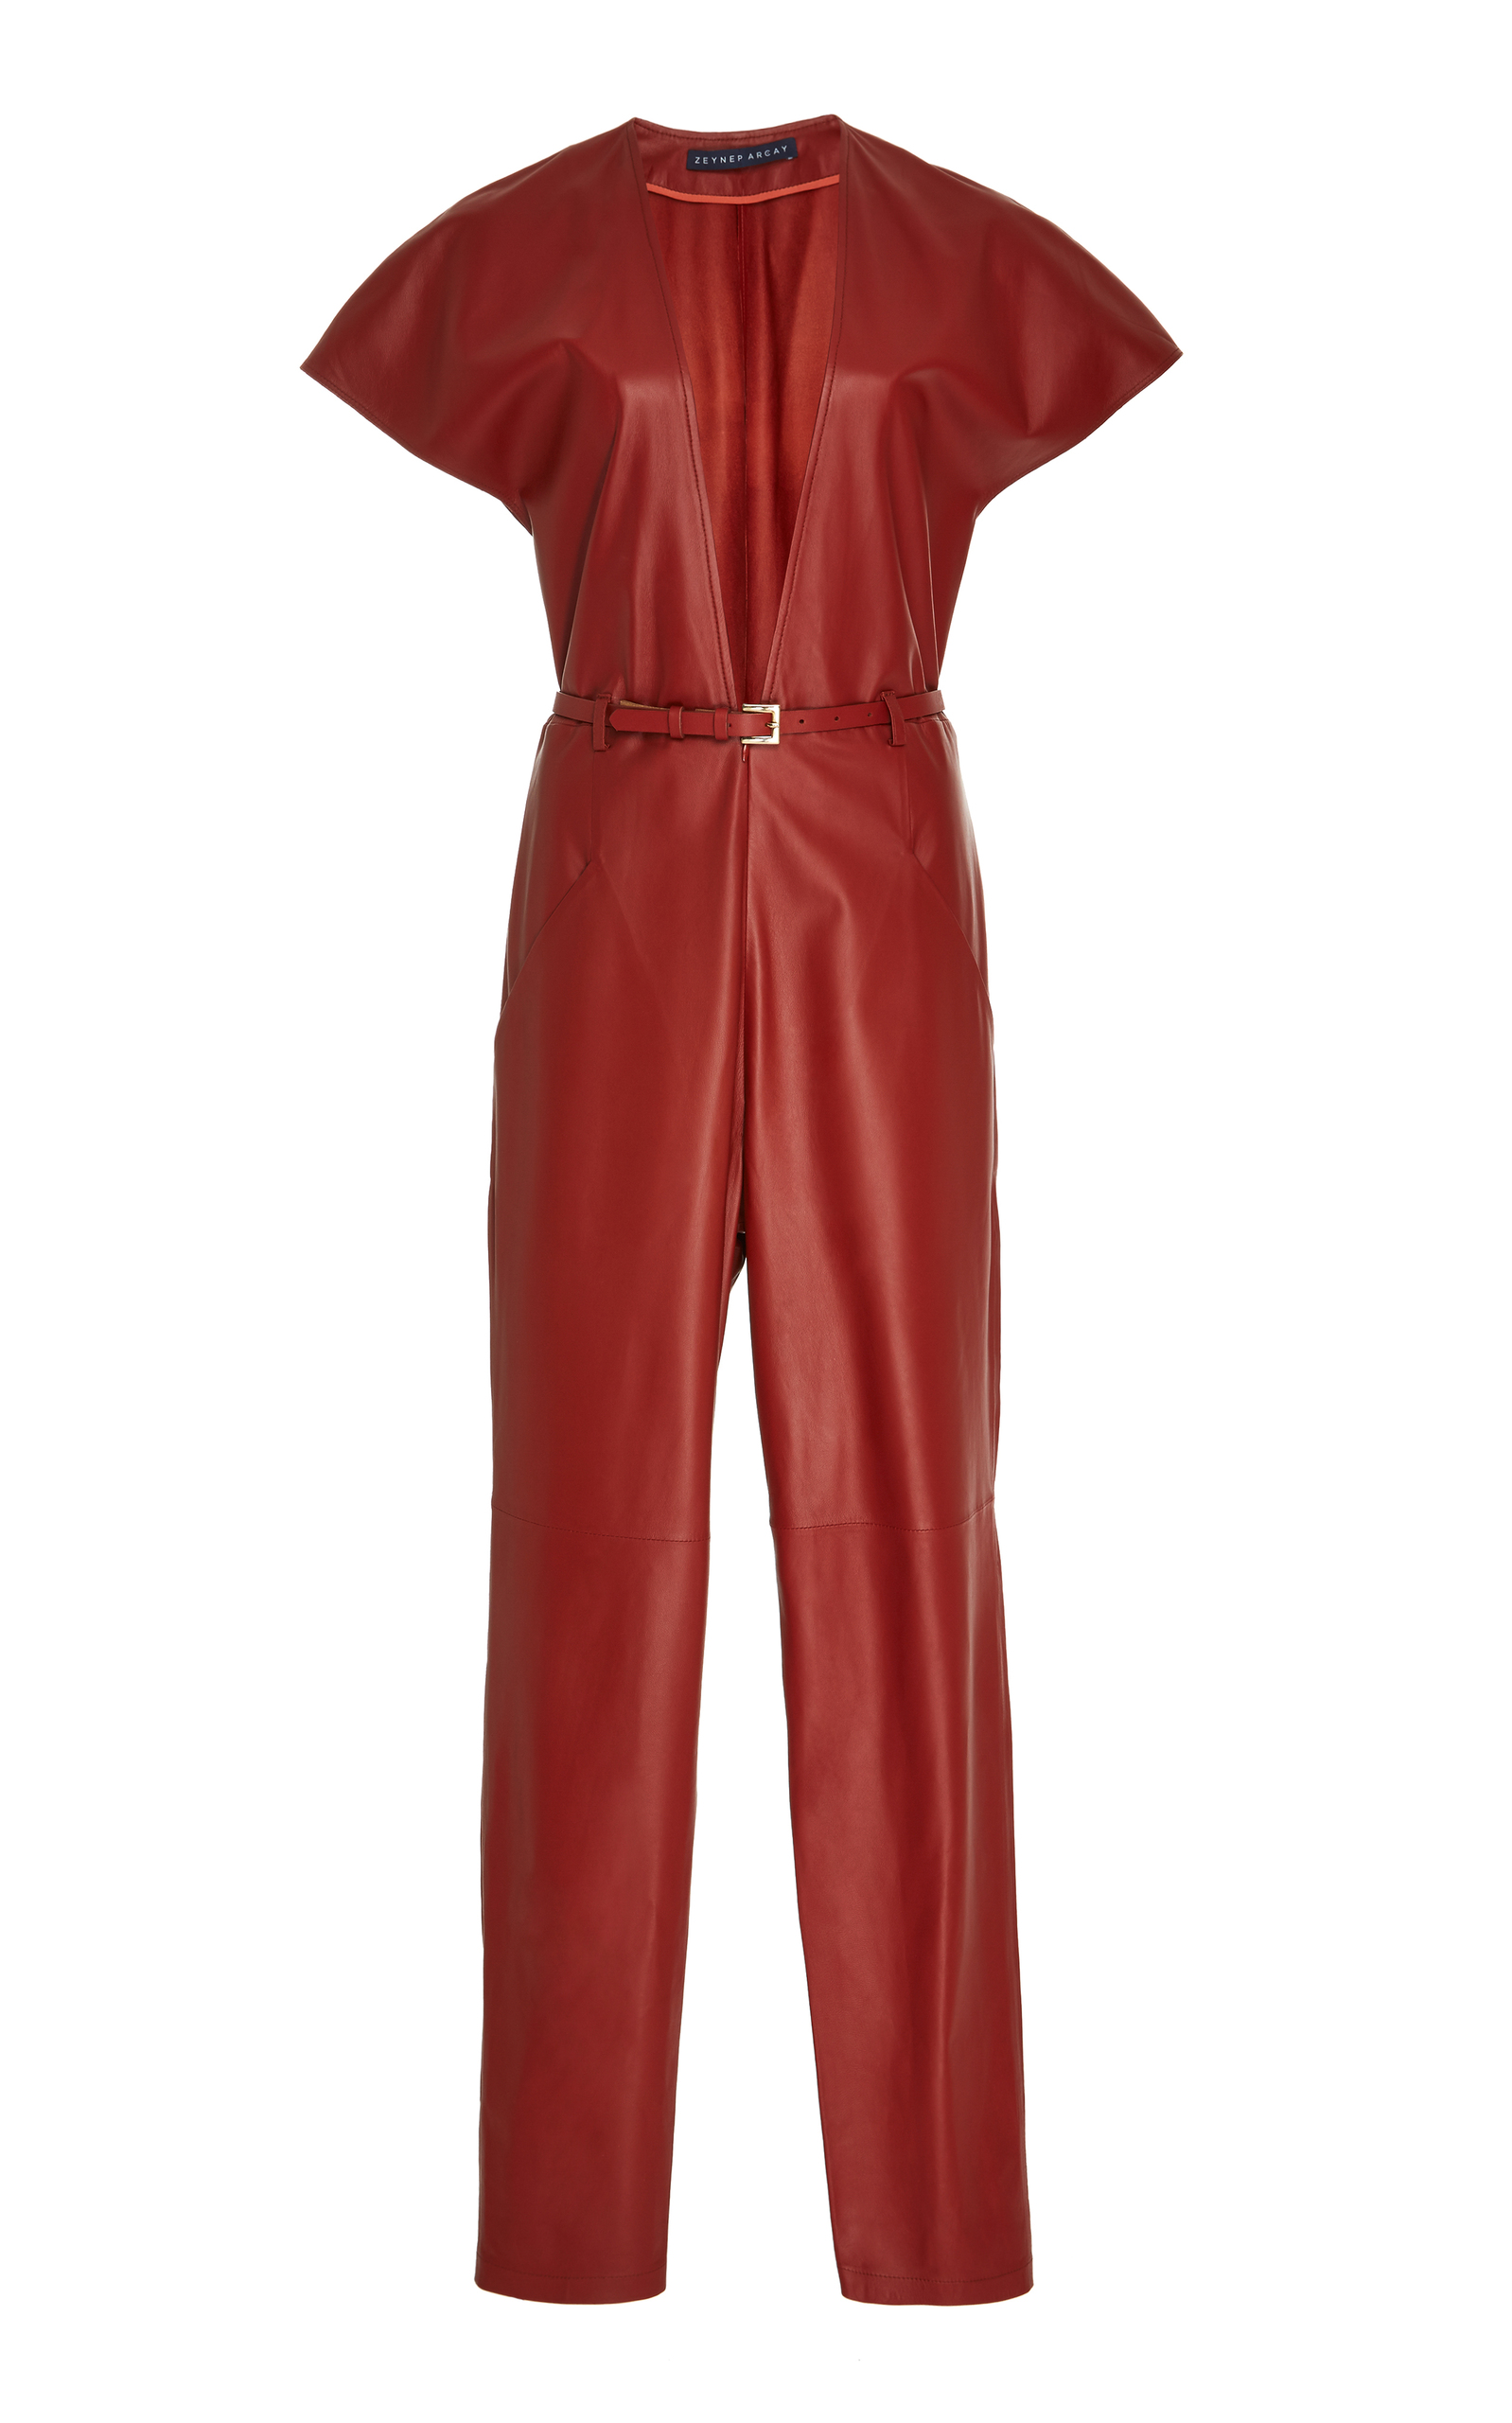 6c84d4df32 Zeynep ArçayV Neck Leather Jumpsuit. CLOSE. Loading